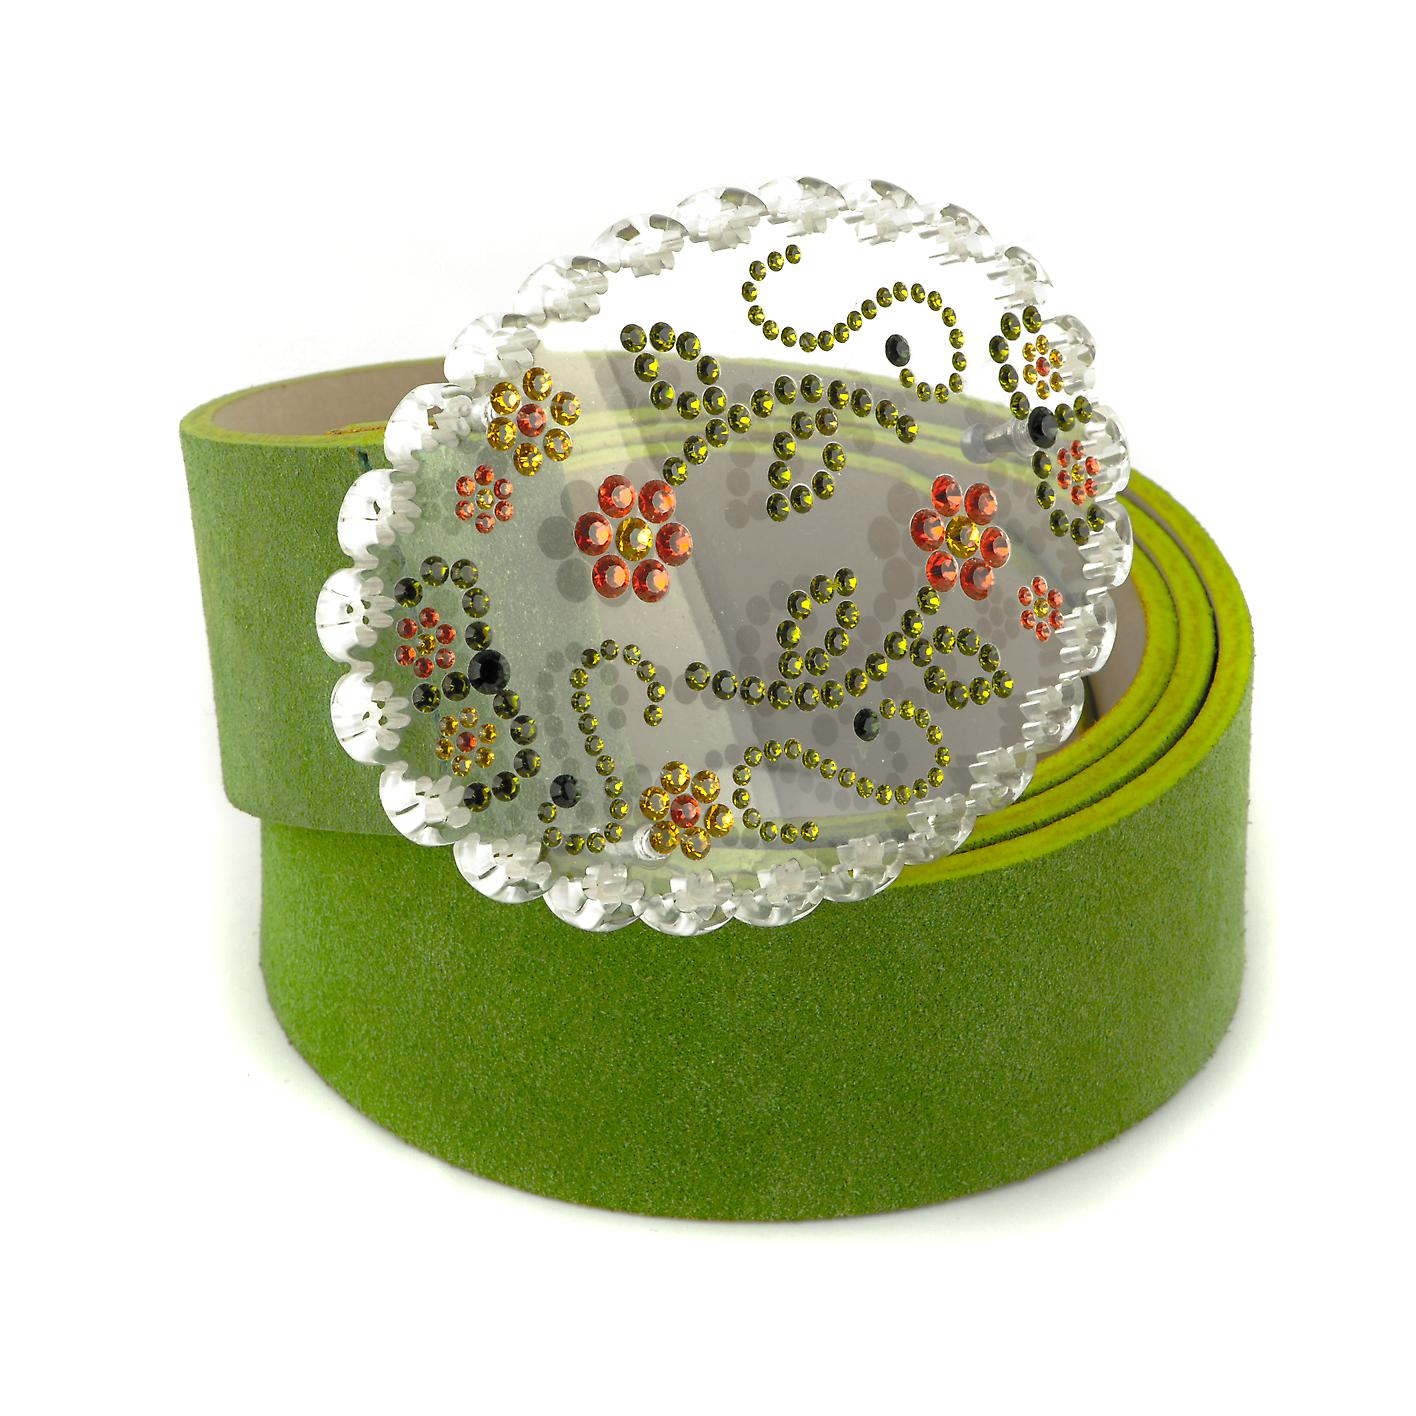 Waooh - belt leather Adreani WCEIN0587 - green yellow red - Perspex Art - leather green Swaroski Strass - made in Italy